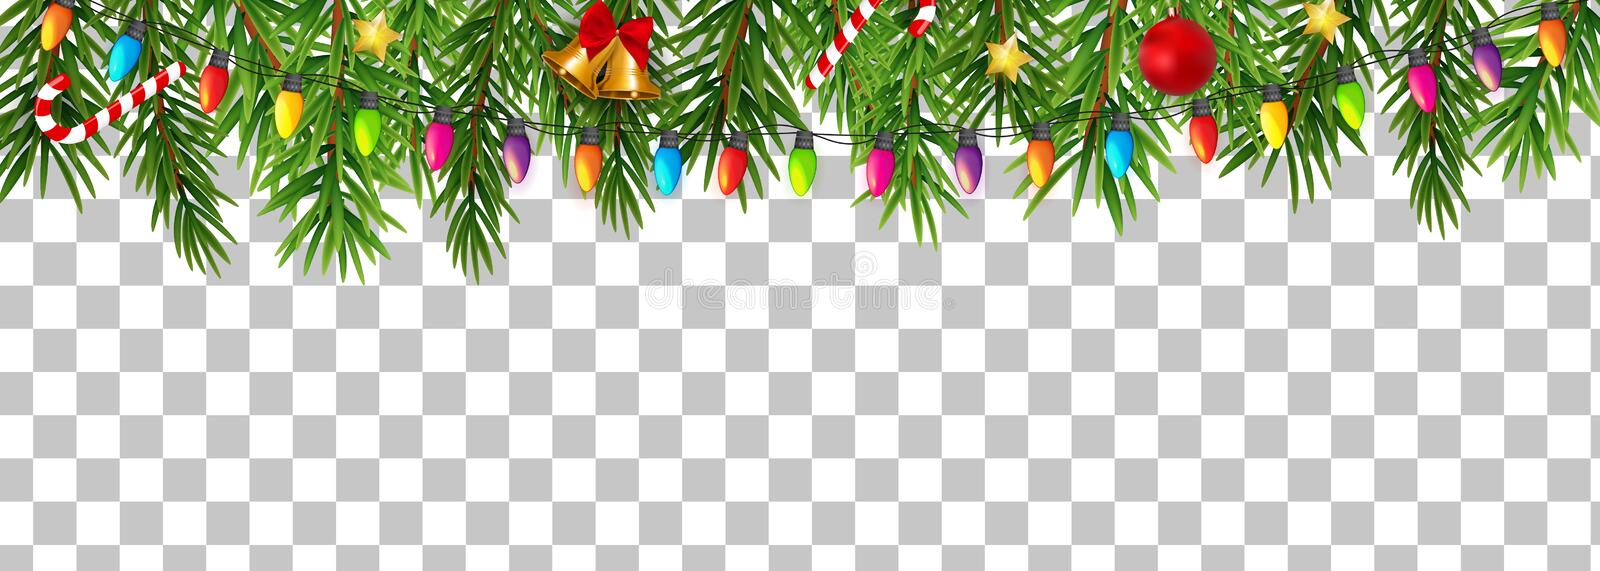 Abstract Holiday New Year and Merry Christmas Border on Transparent Background Vector Illustration stock illustration